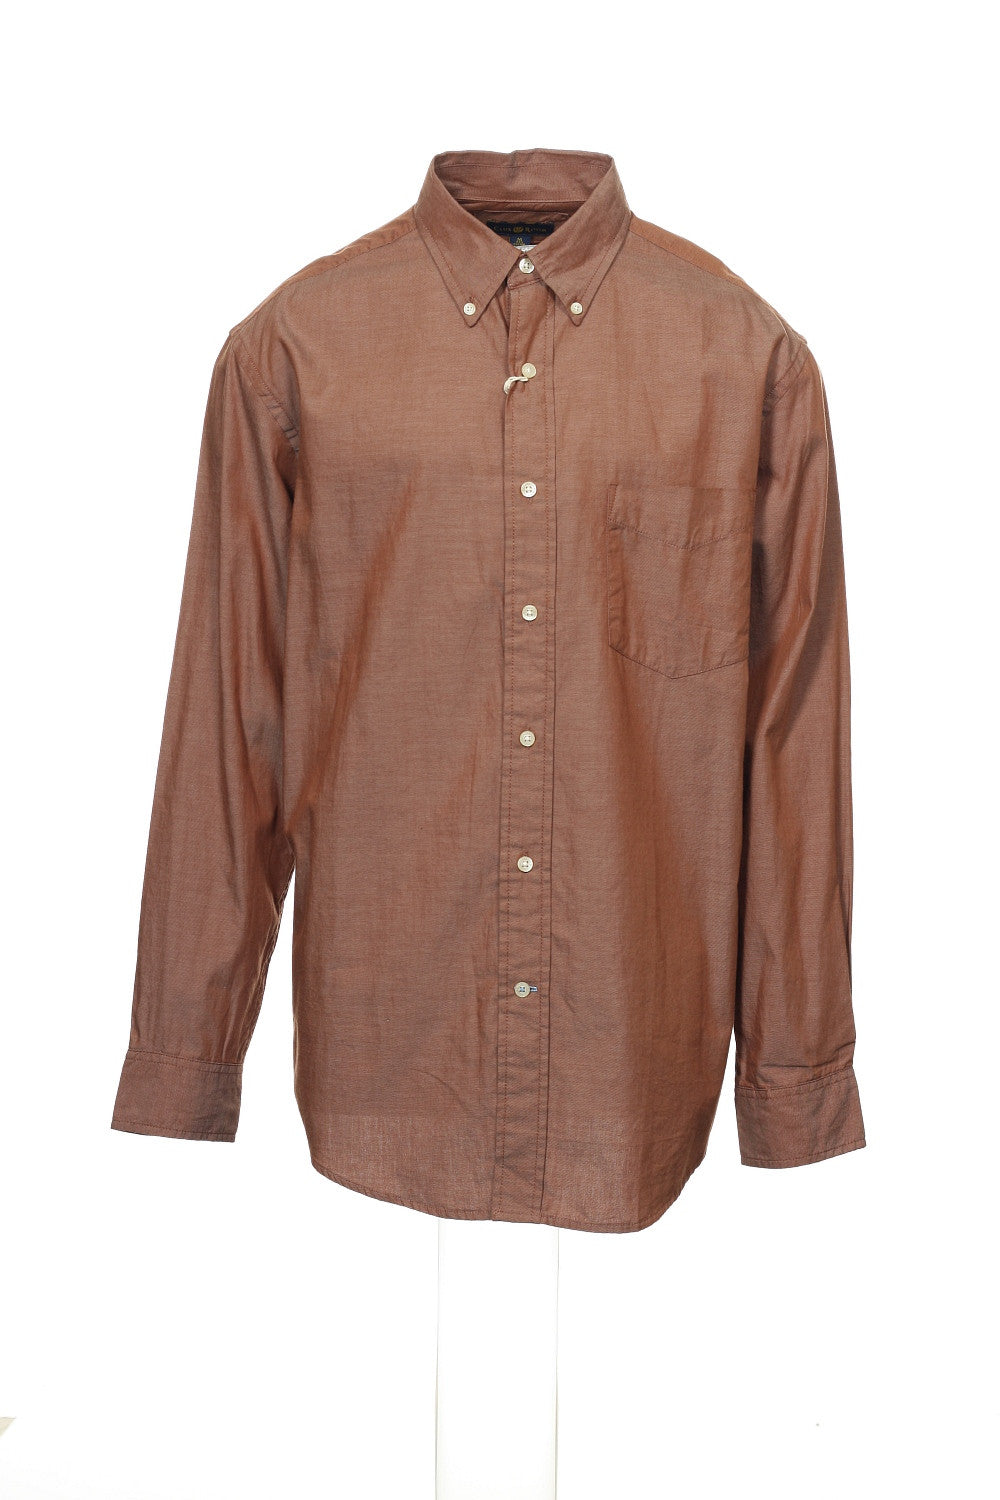 Club Room Mens Brown Heather Button Down Shirt